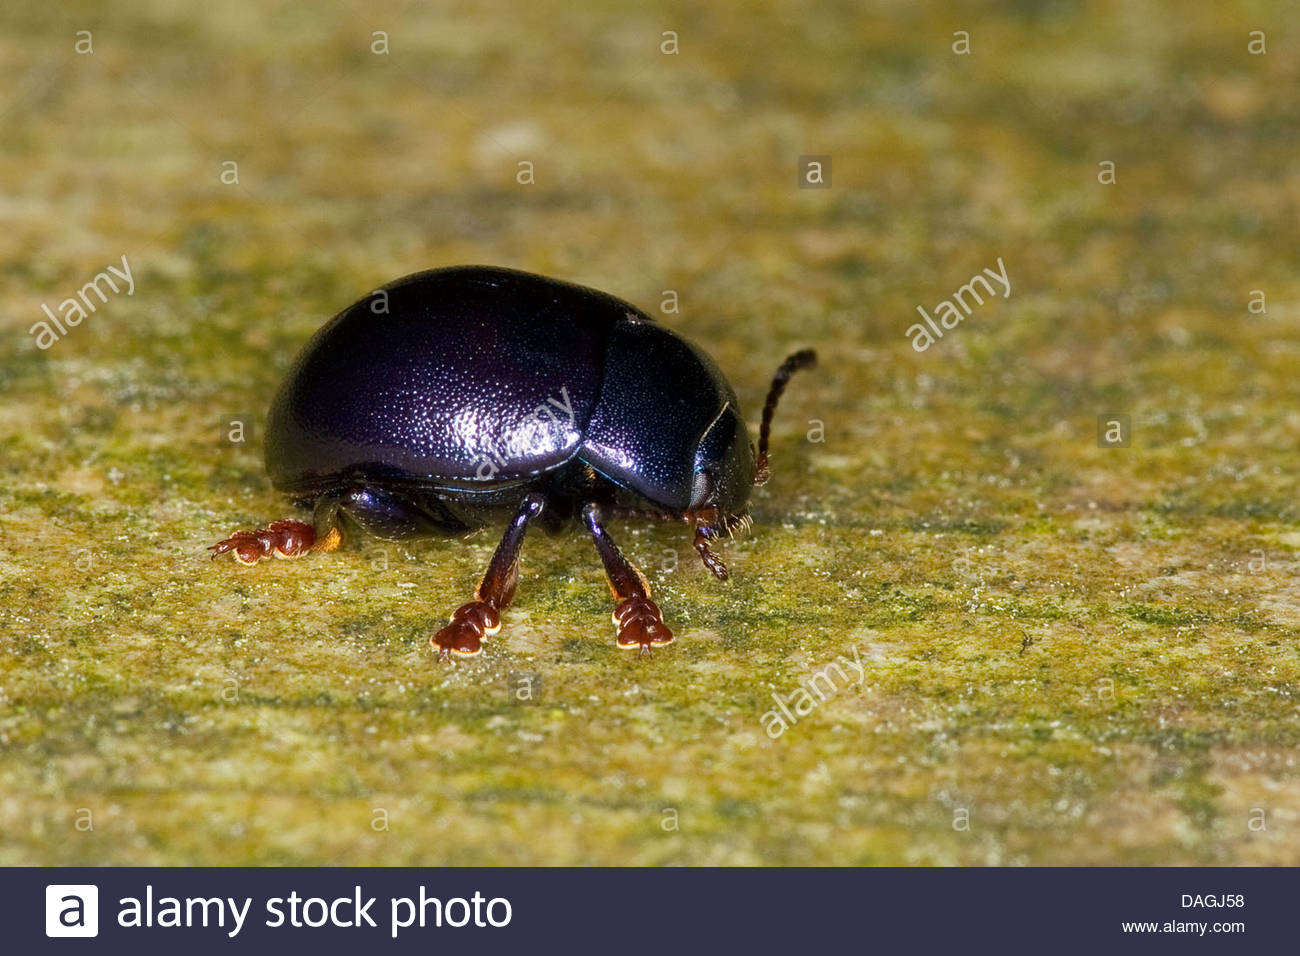 Chrysolina Leaf Beetle Stock Photos & Chrysolina Leaf Beetle Stock.